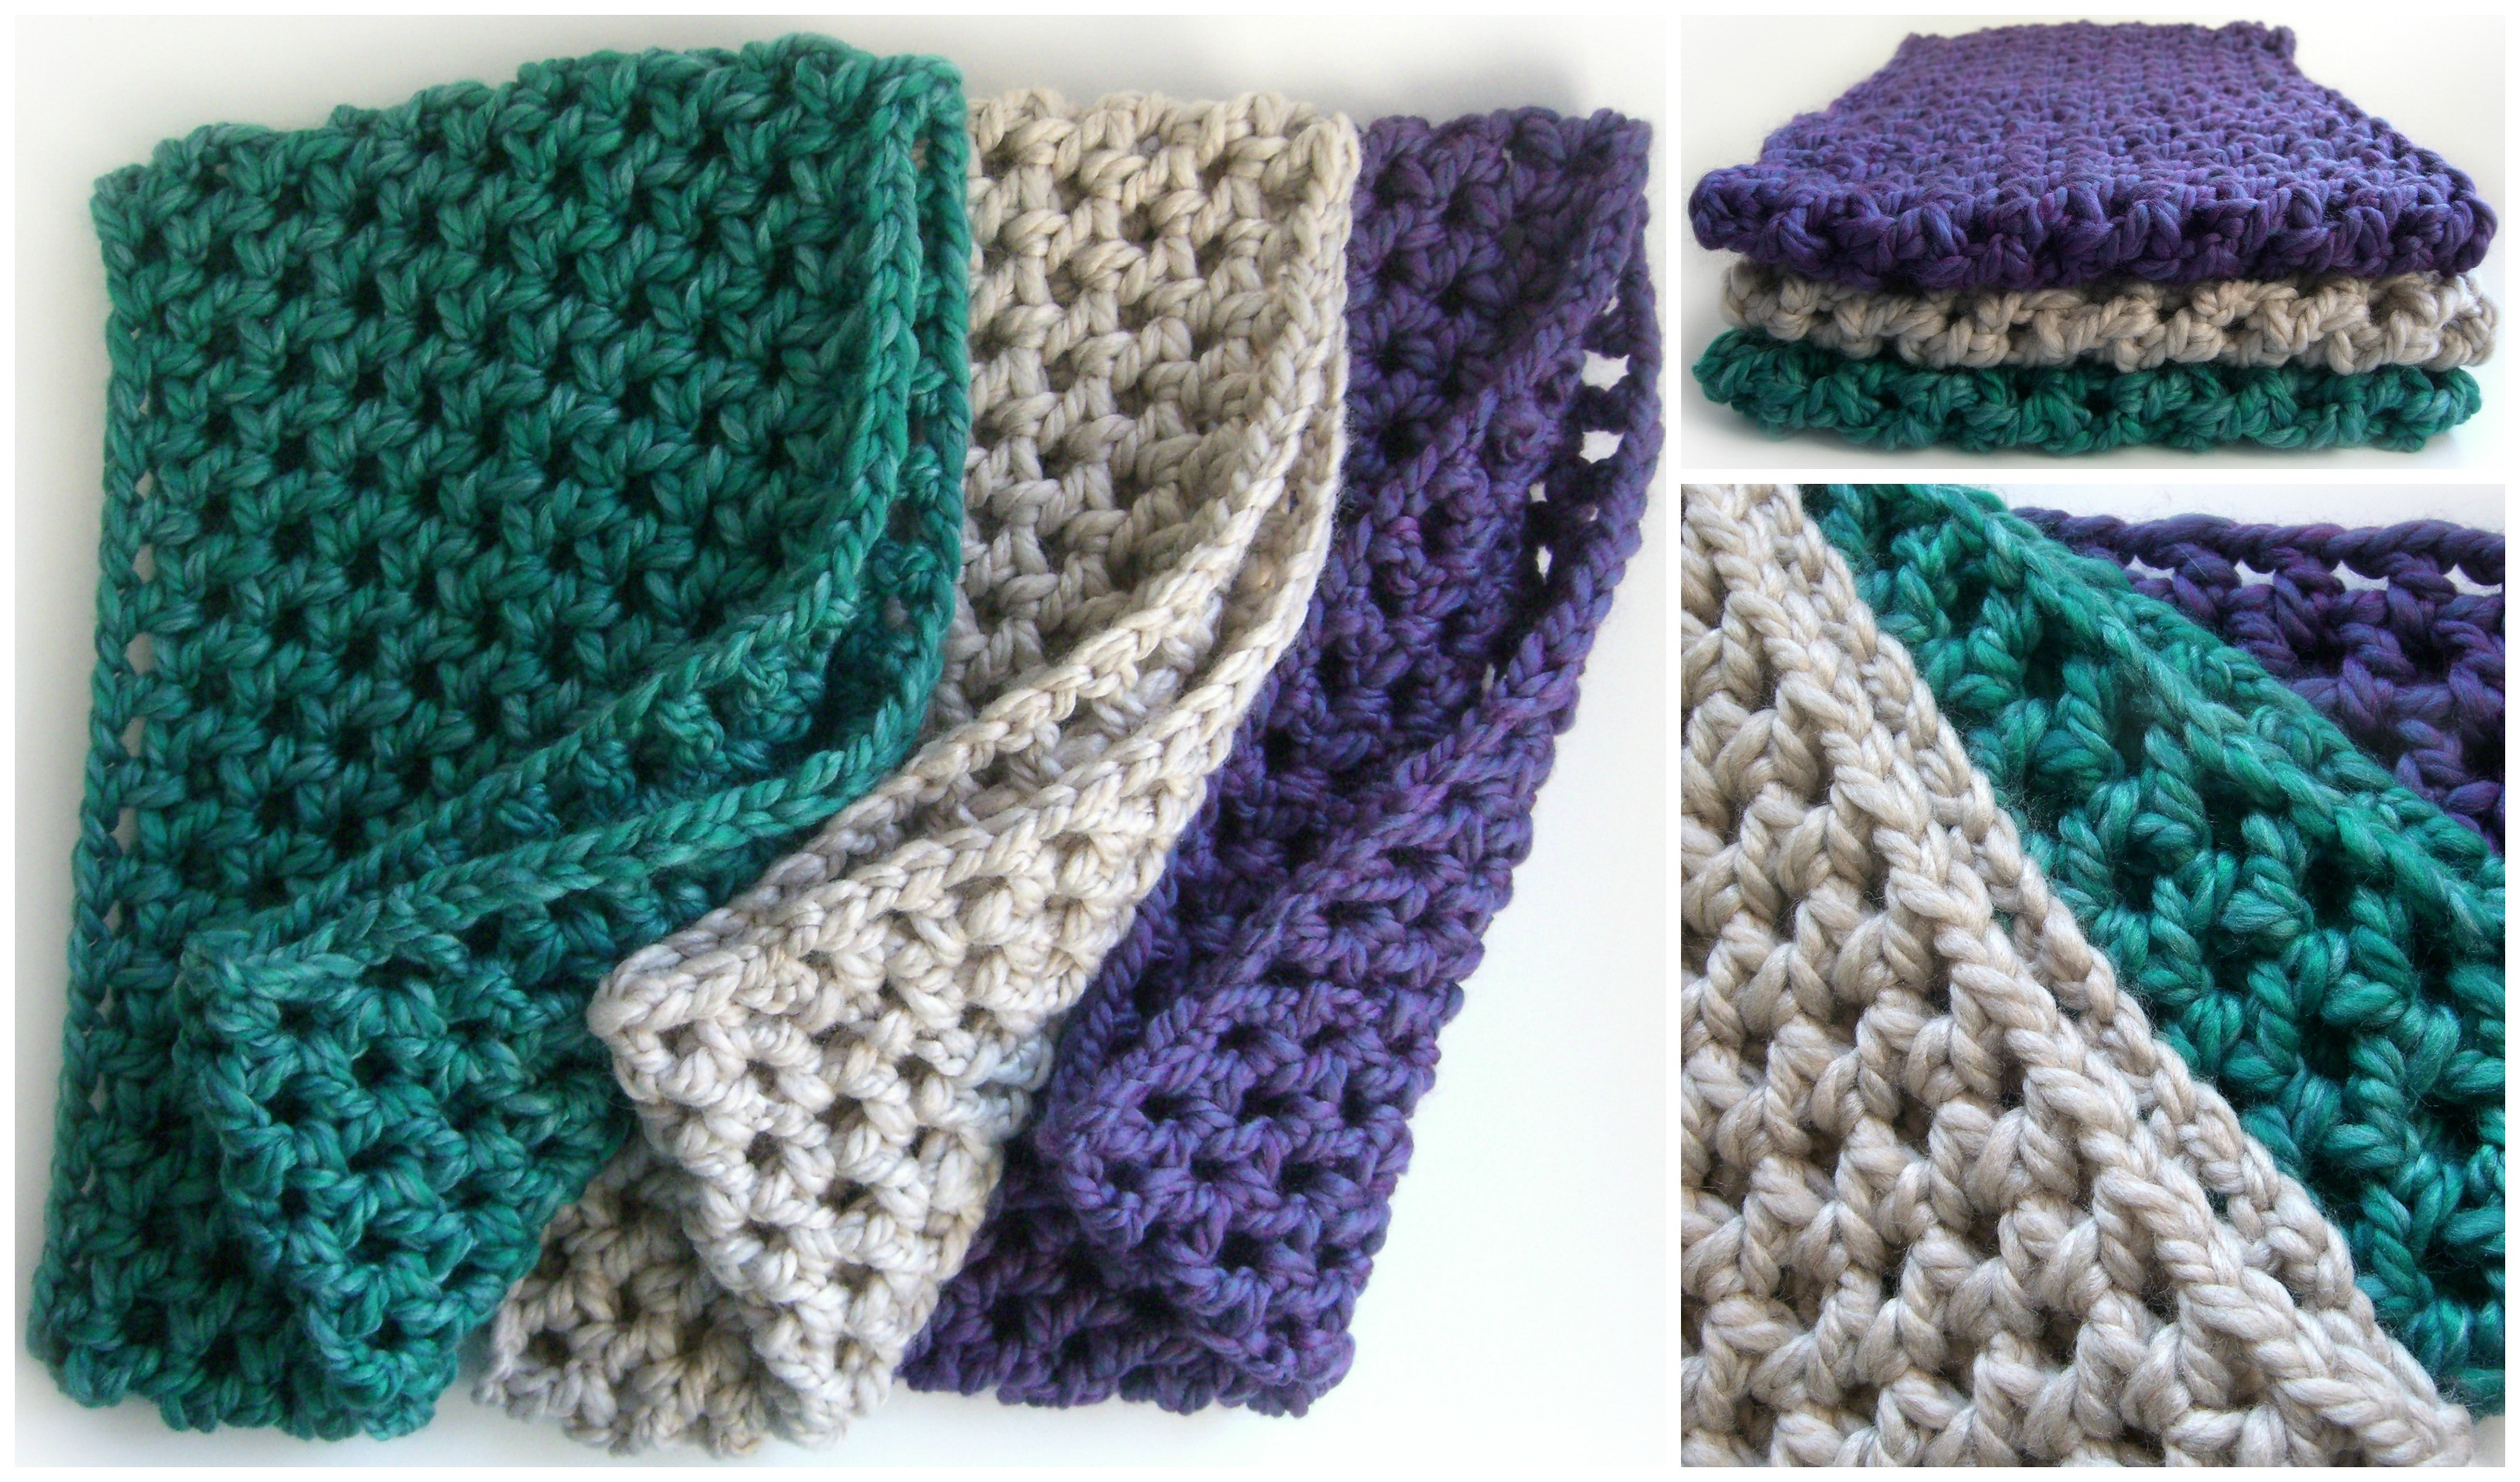 Crochet Cowl Scarf New Easy Crochet Cowl Scarf Pattern Of Awesome 42 Pics Crochet Cowl Scarf